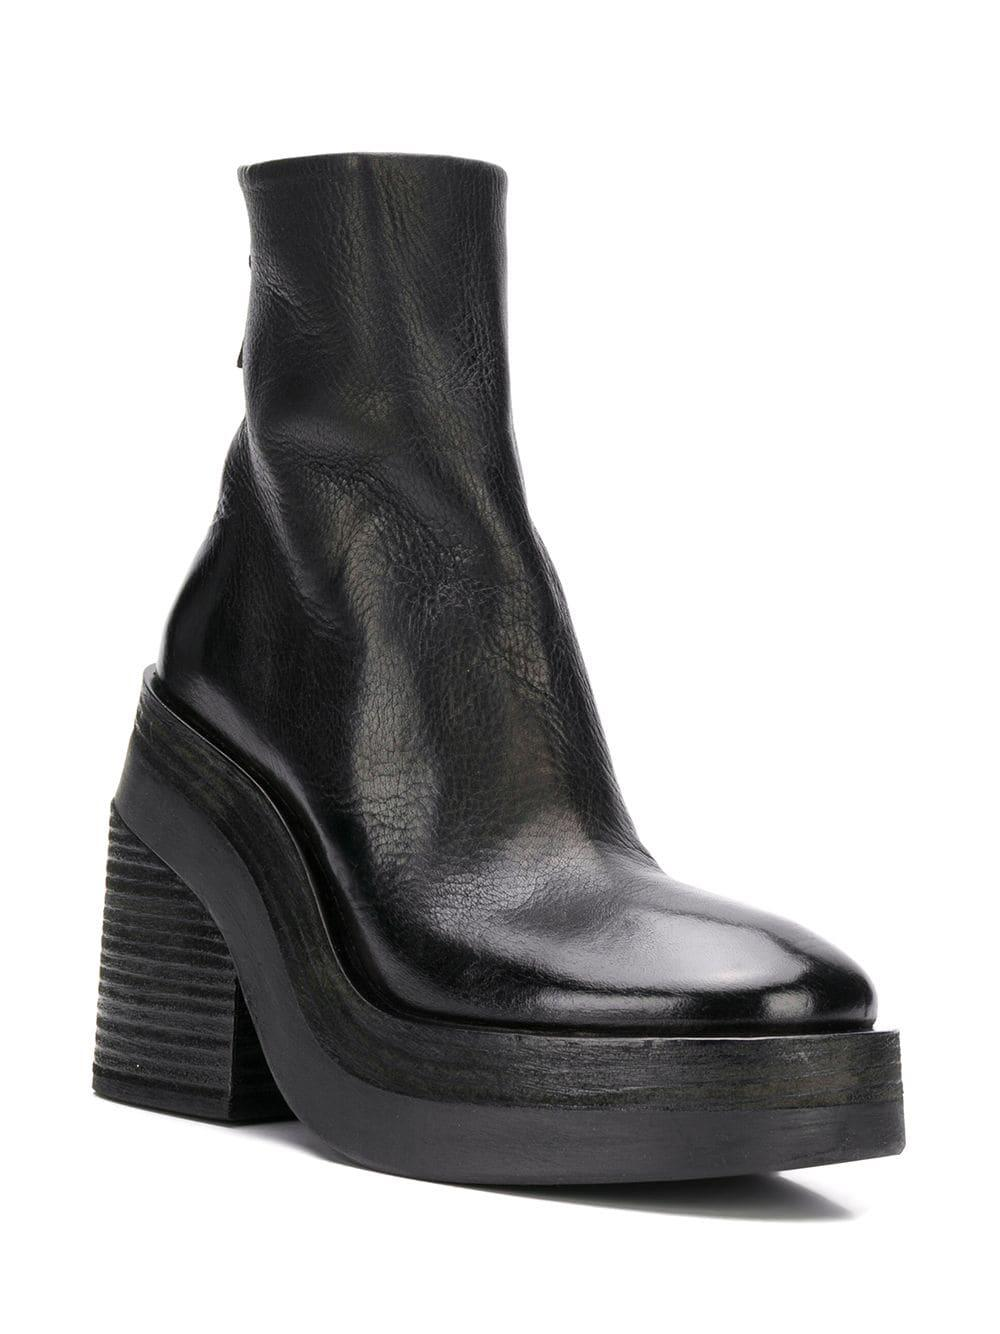 41e40741a2f30 Lyst - Marsèll Platform Ankle Boots in Black